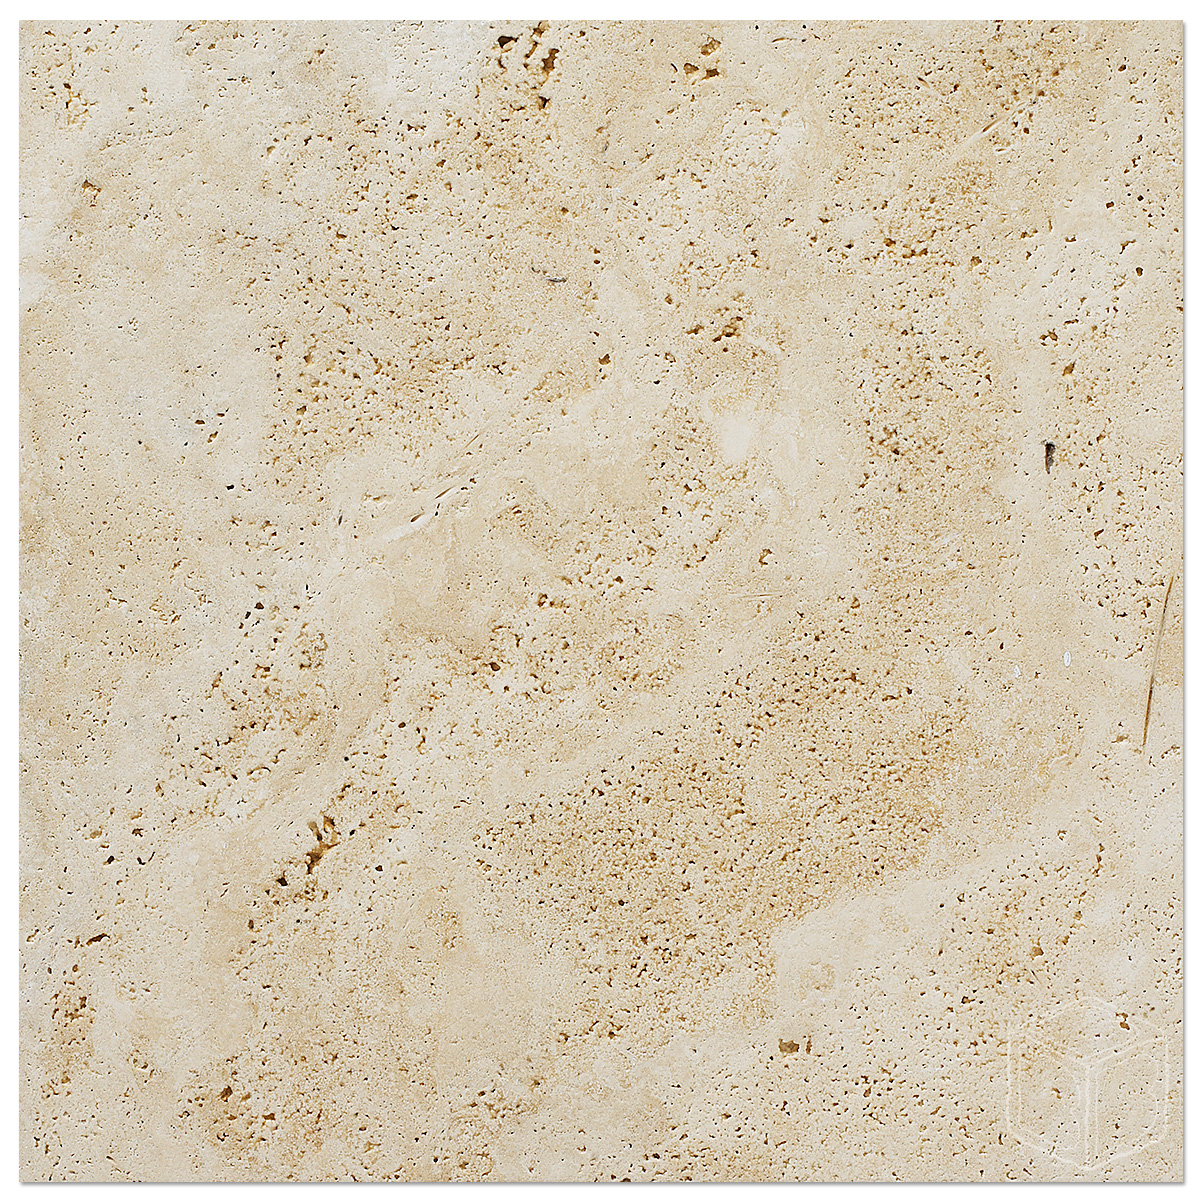 18x18 Tile In Small Bathroom: White Travertine Brushed 18×18